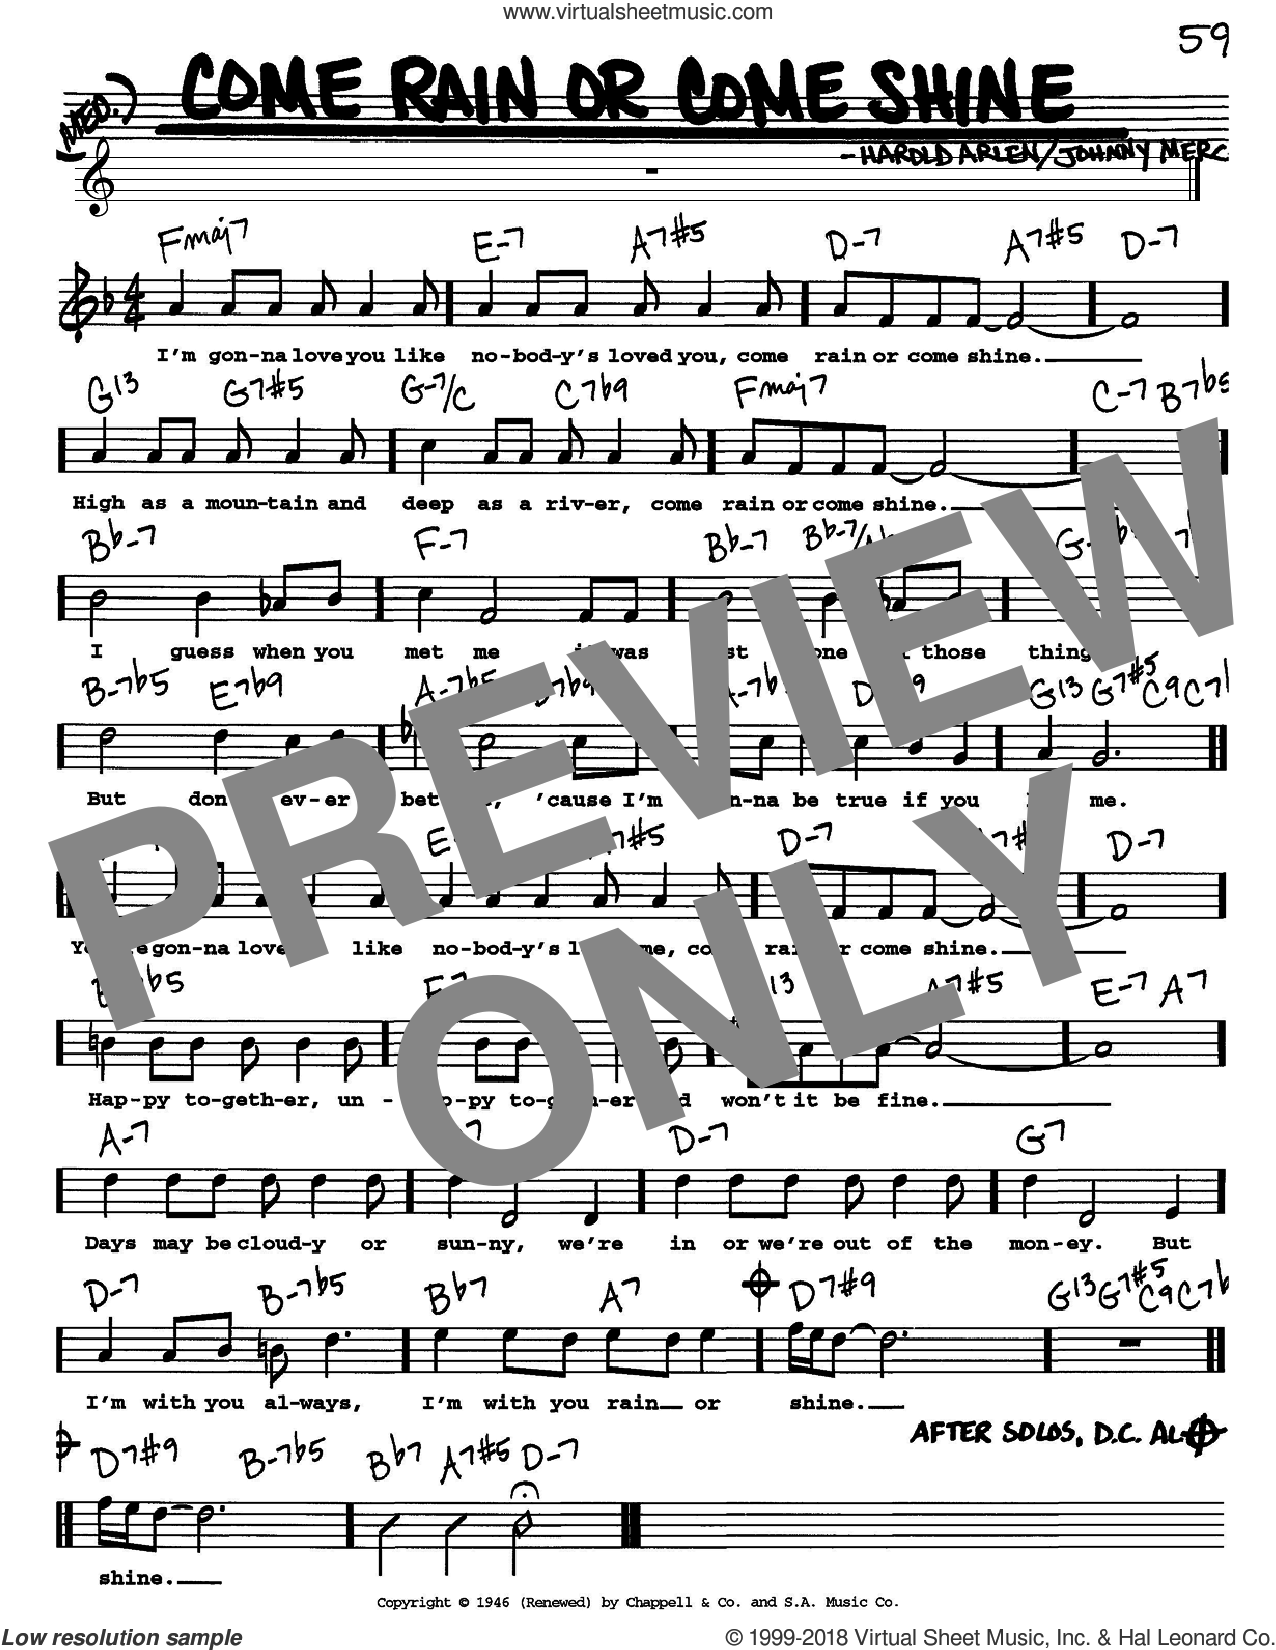 Come Rain Or Come Shine sheet music for voice and other instruments (Vocal Volume 1) by Johnny Mercer and Harold Arlen. Score Image Preview.